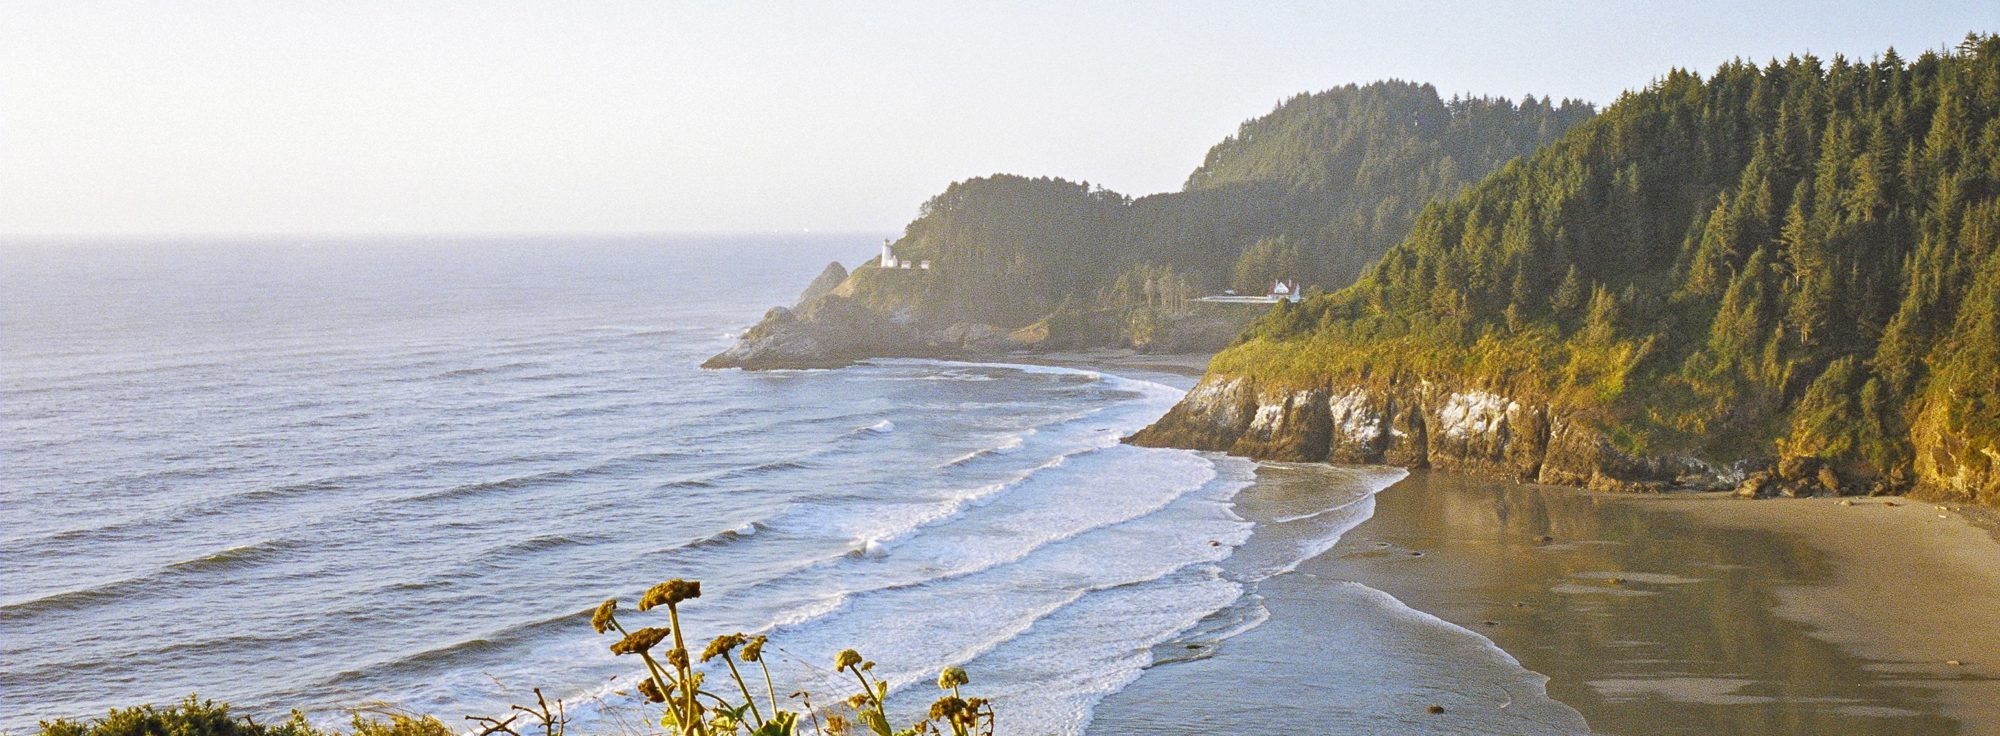 The view from the Pacific Coast Scenic Byway north of Florence. Heceta Head Lighthouse is in the distance. Photographer: